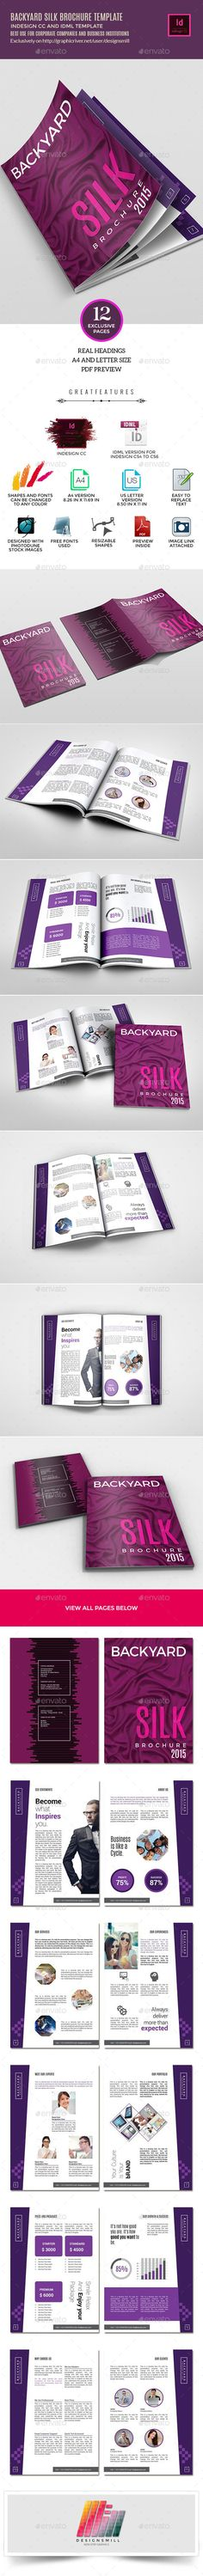 Brochure — InDesign INDD #quotation #print ready • Available here → https://graphicriver.net/item/brochure/10281228?ref=pxcr